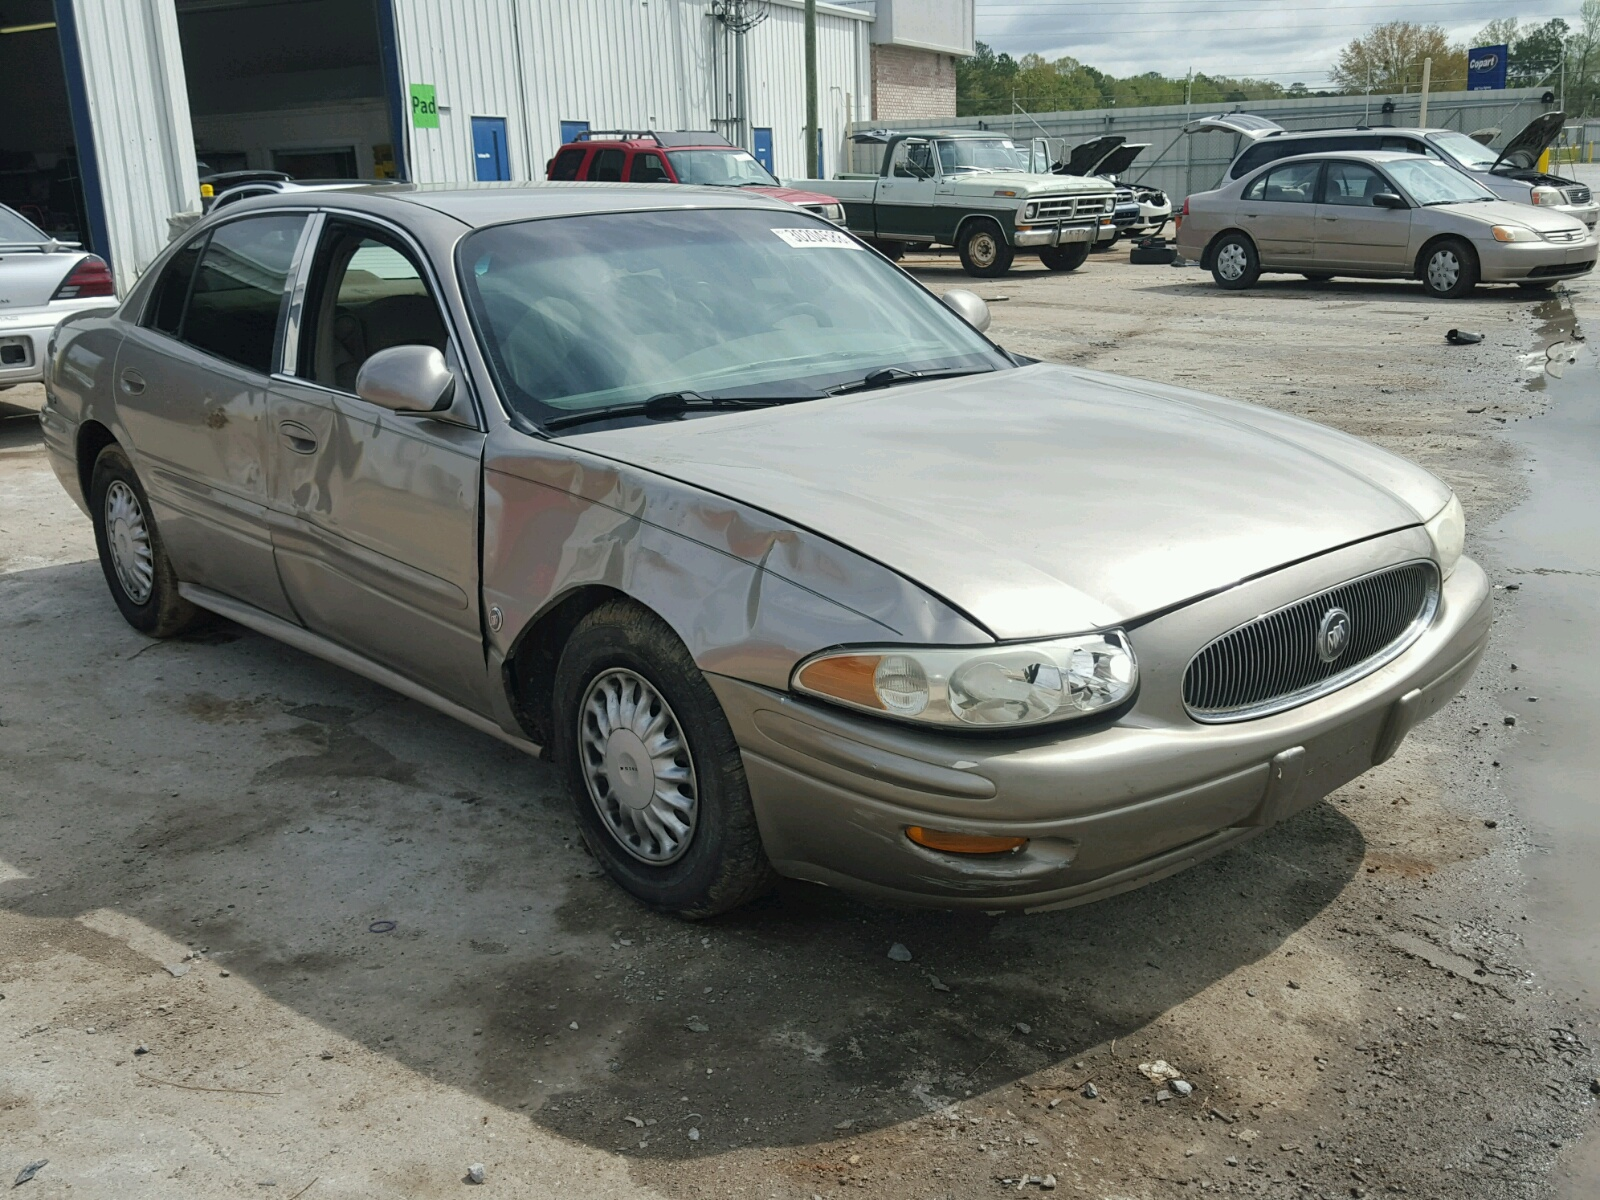 lesabre cert title of mi left carfinder vehicle silver buick lot online auctions copart view cu in lansing sale on salvage for auto en